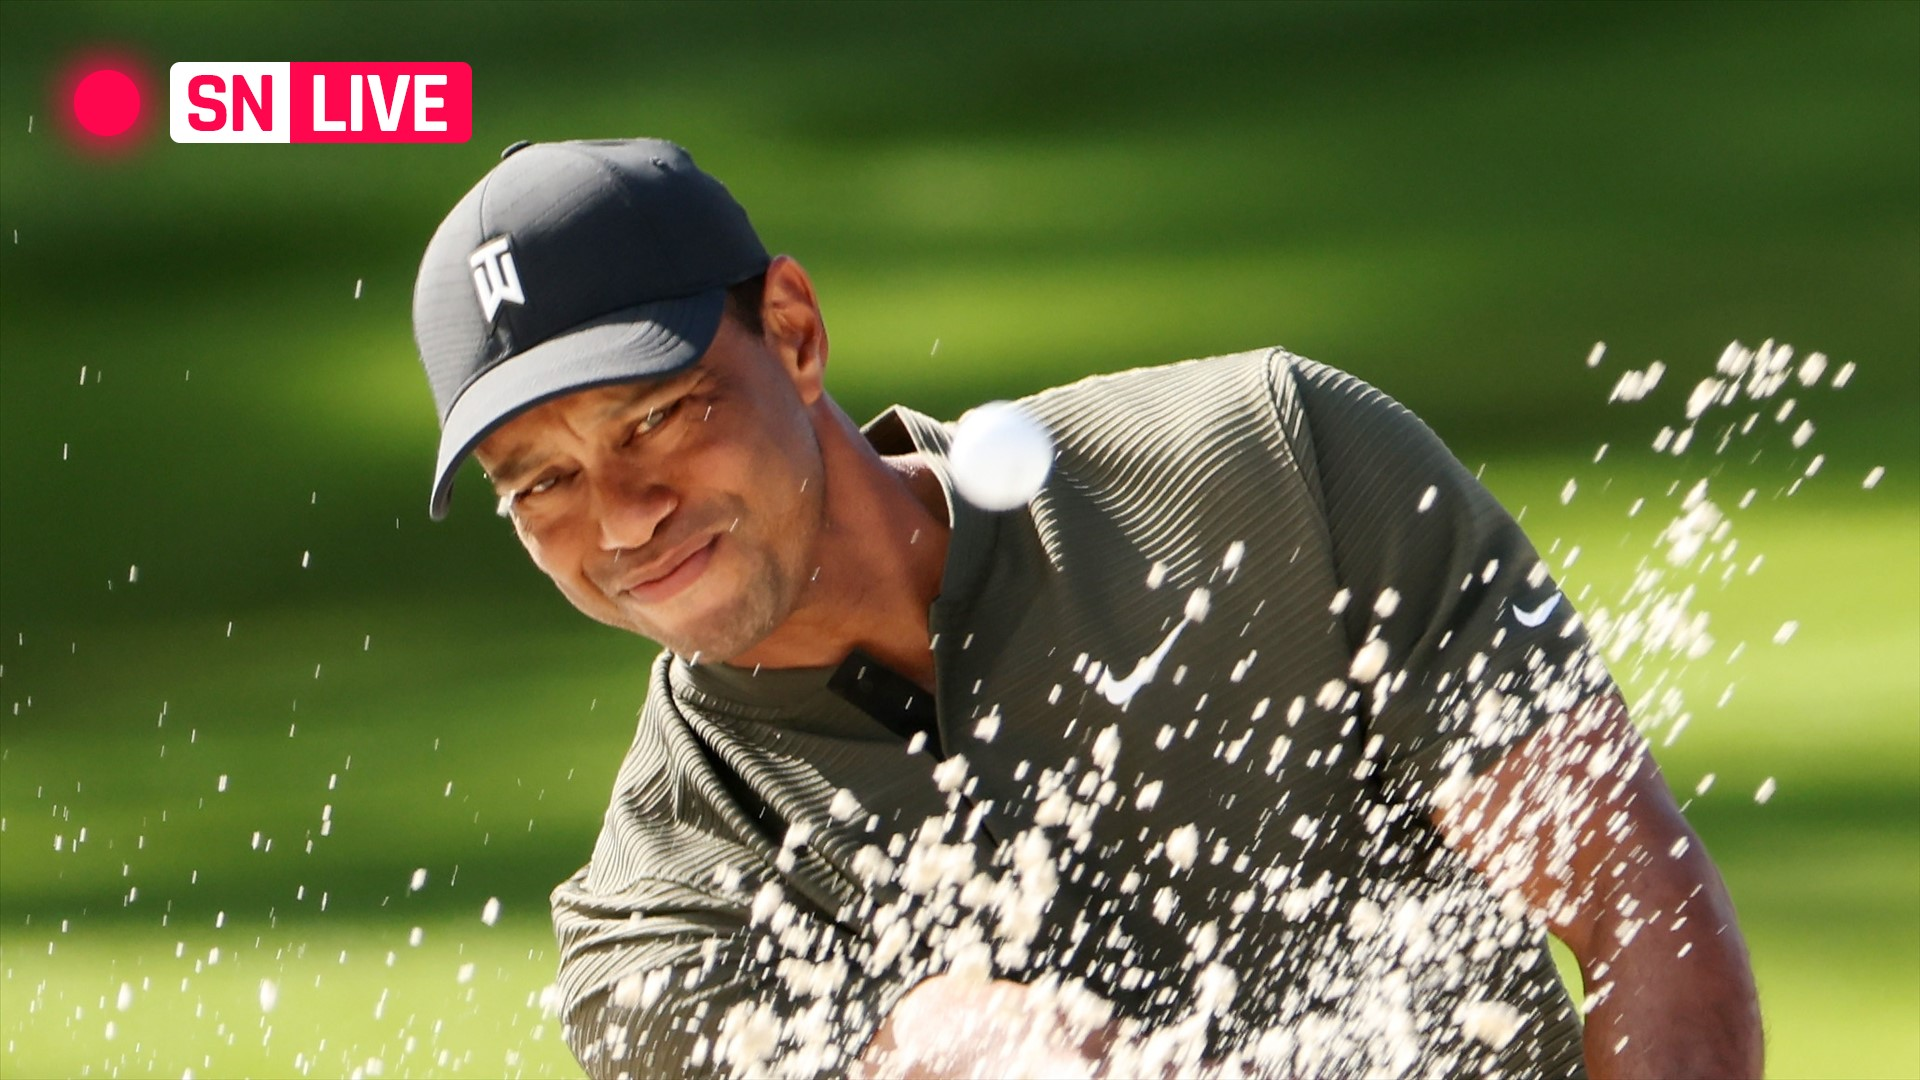 Tiger Woods live score, results, highlights from Friday's Round 2 at the Masters